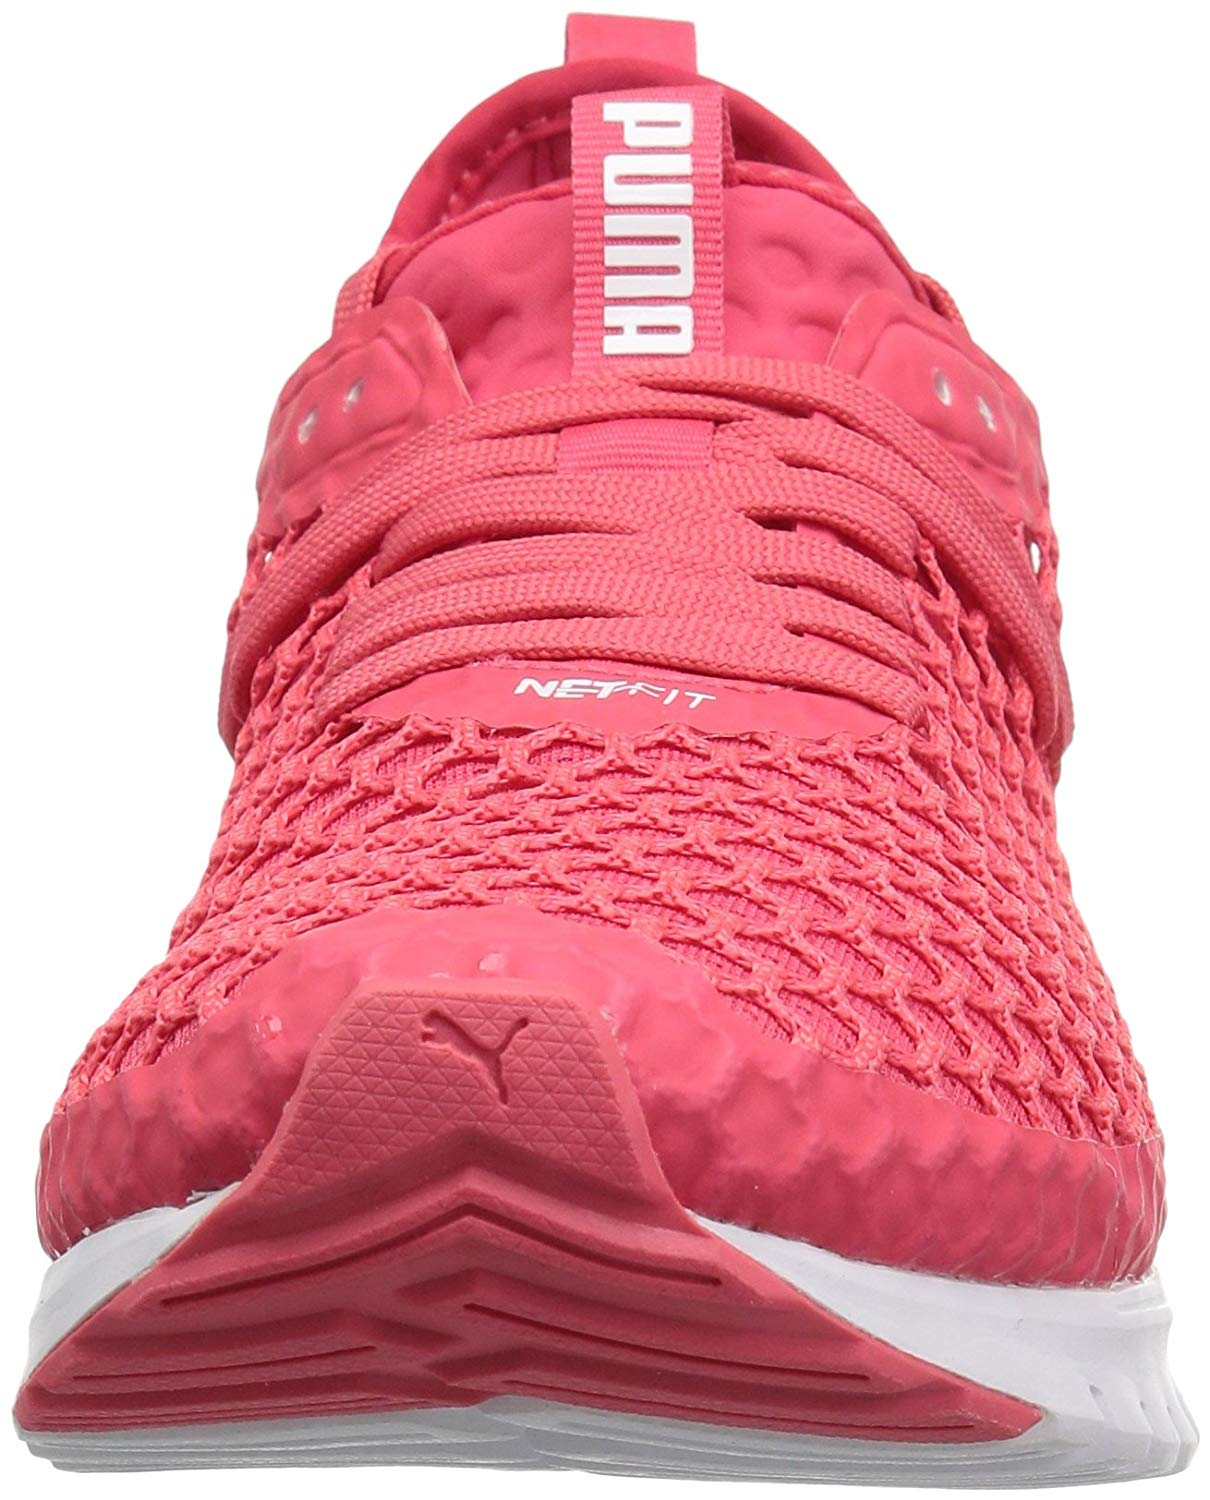 0995e481c657 PUMA Women s Ignite Dual Netfit Wn Cross Trainer